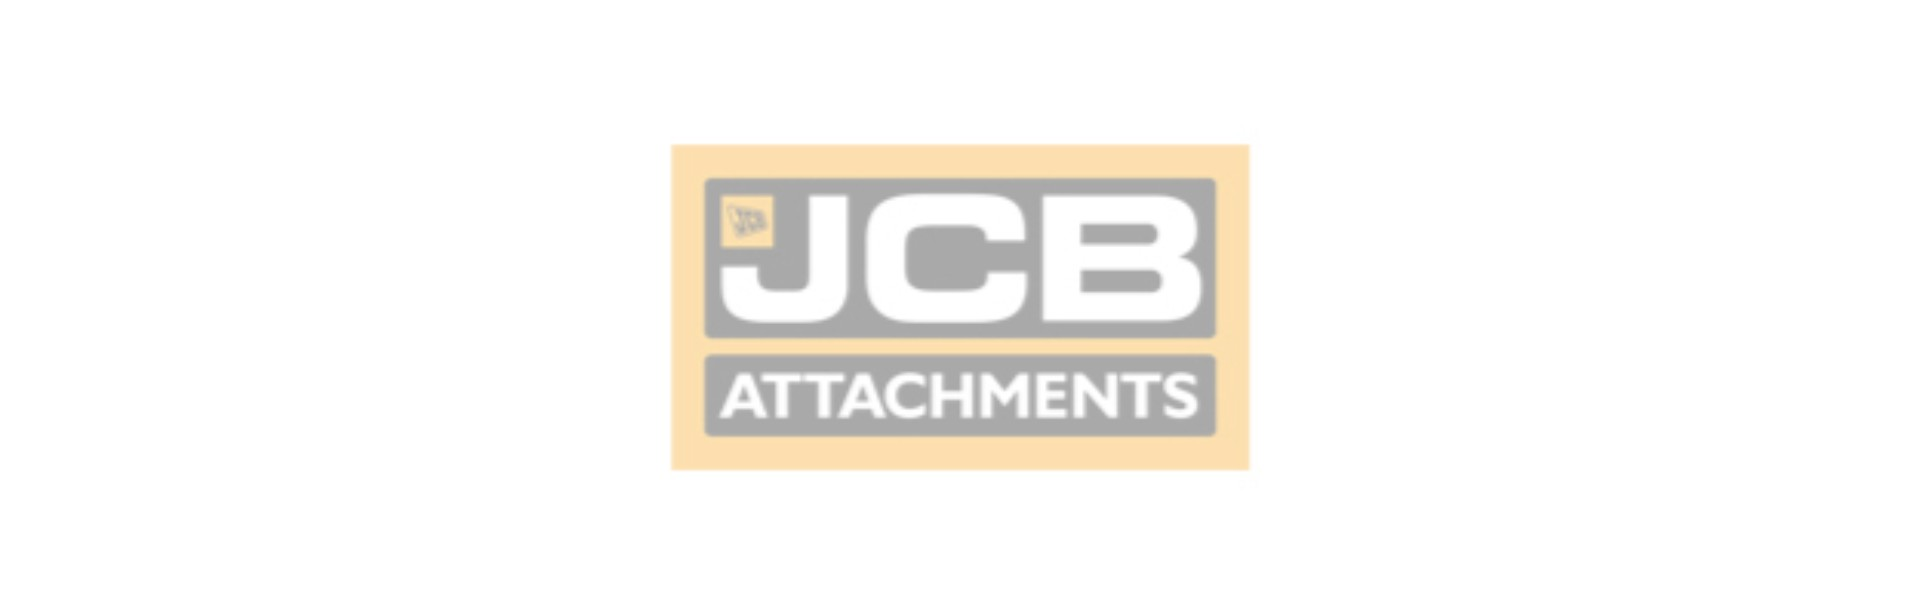 JCB General Earth Drill Myanmar